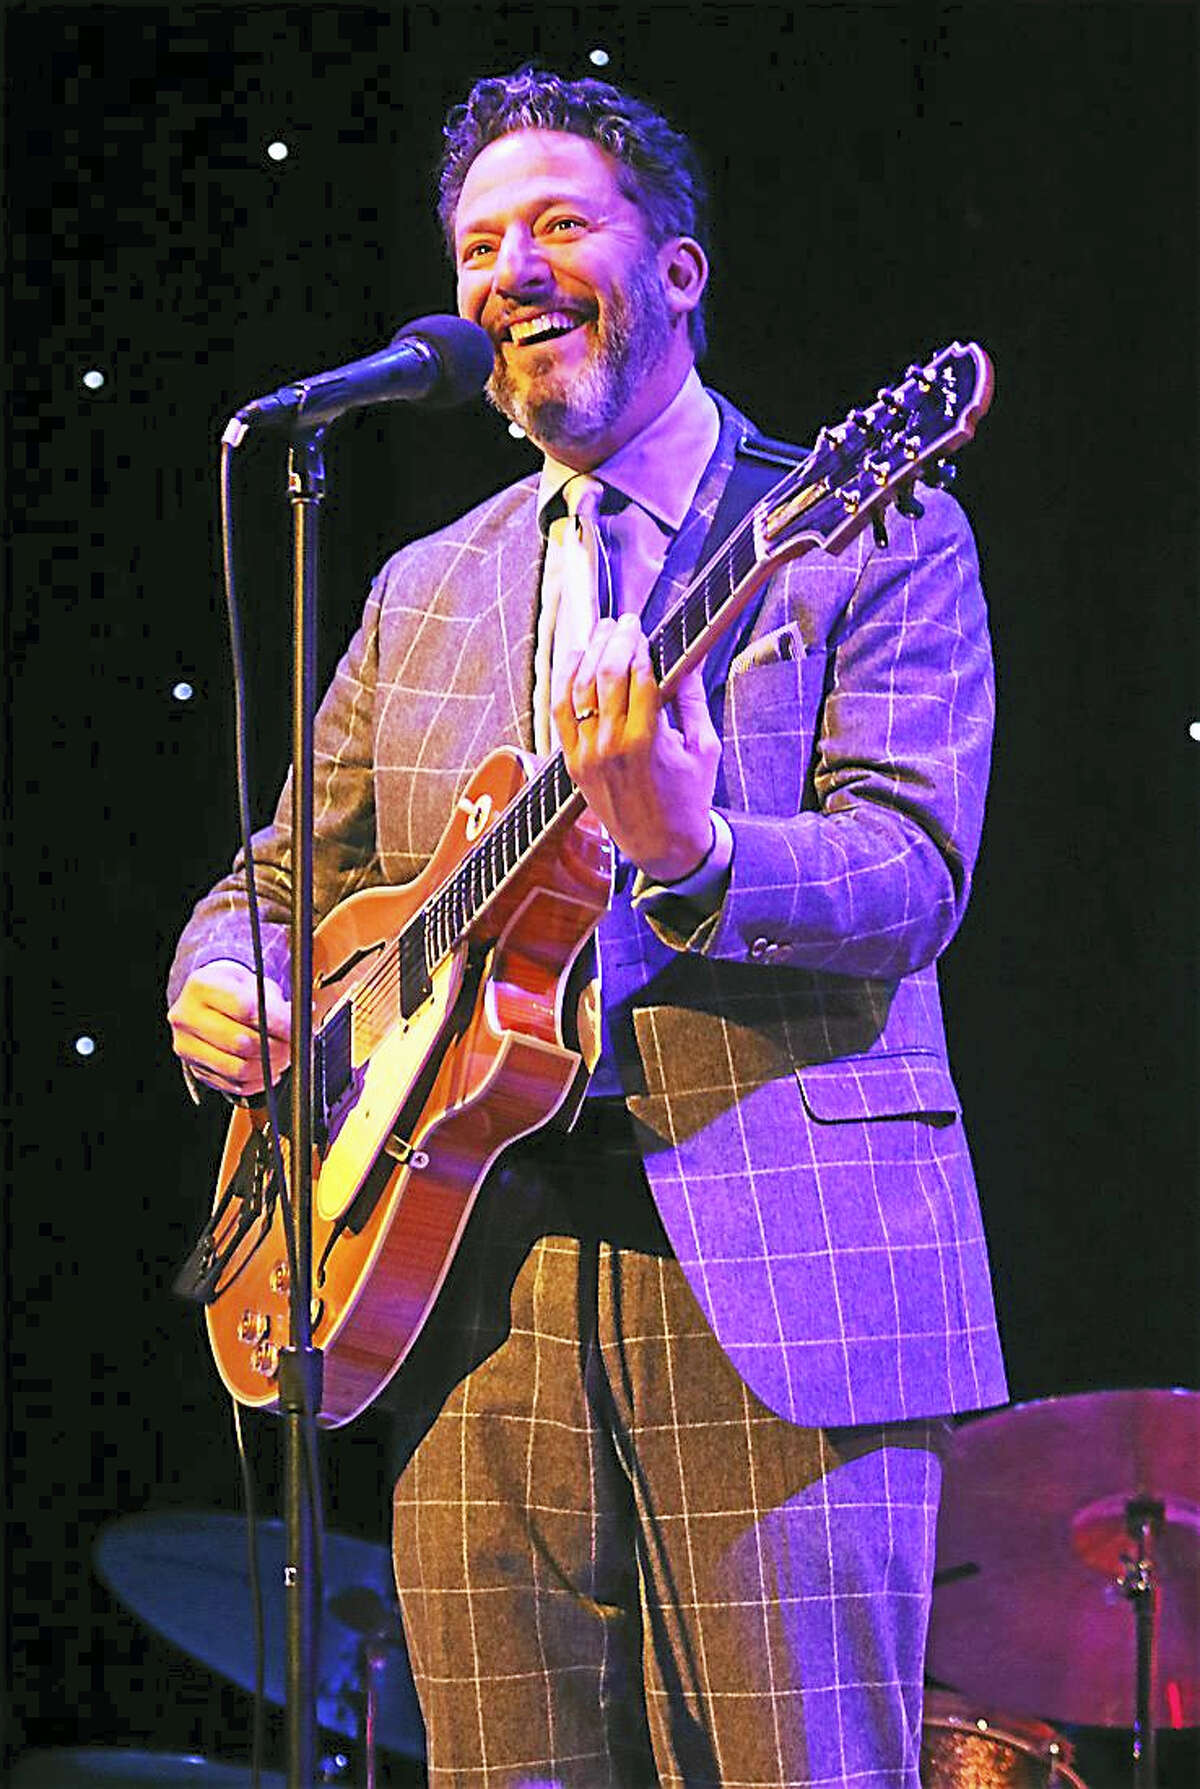 Photo by John AtashianJazz guitarist, vocalist, songwriter and bandleader John Pizzarelli performs during his concert at Infinity Music Hall in Hartford on Dec. 10. During his career During his 33-year music career, John has recorded over 20 solo albums and has appeared on more than 40 albums of other recording artists, including Paul McCartney, James Taylor and many others. To learn more about musician John Pizzarelli go to www.johnpizzarelli.com